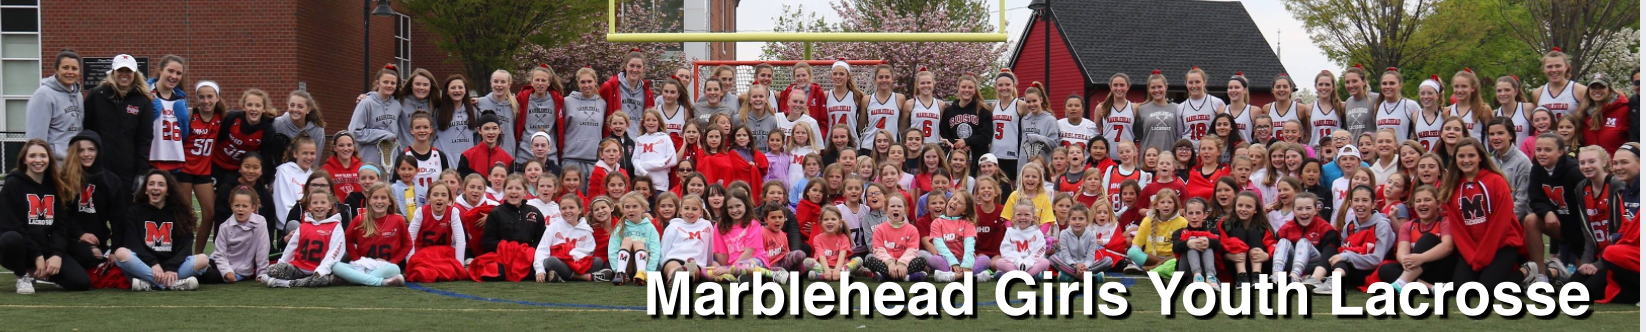 Marblehead Girls Youth Lacrosse, Lacrosse, Goal, Field